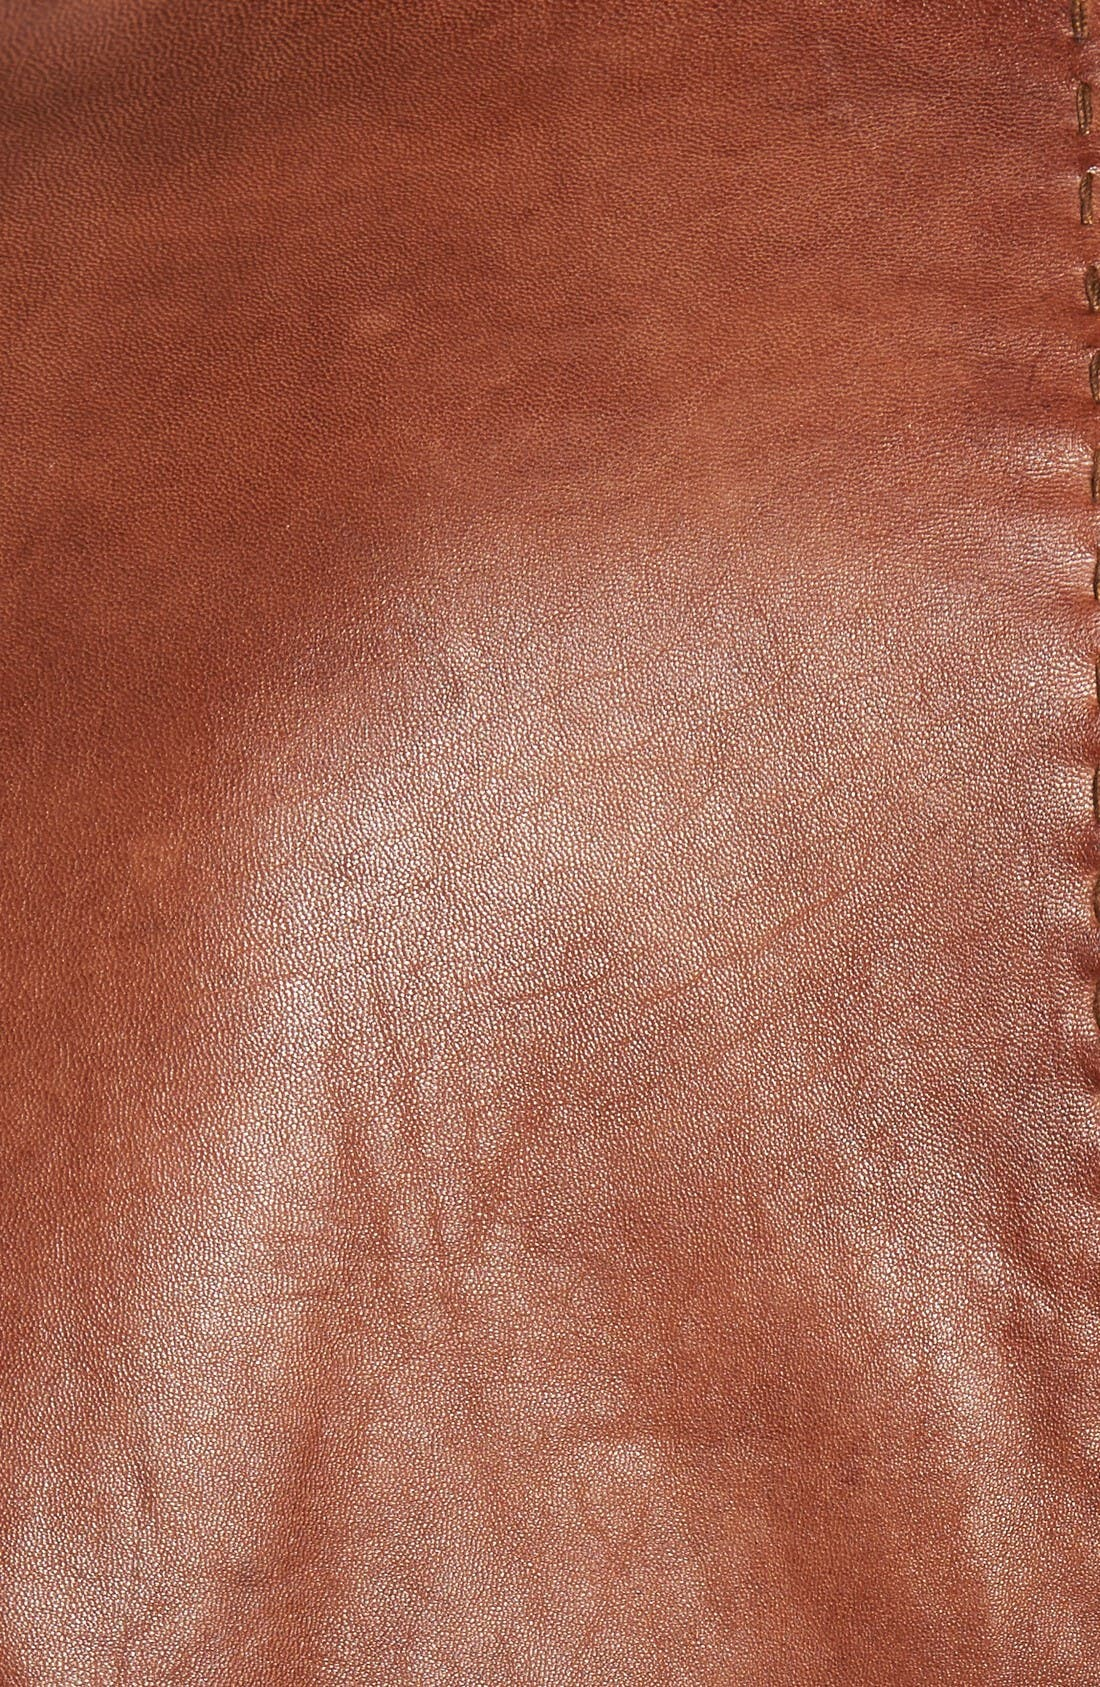 Lamb Leather Blazer,                             Alternate thumbnail 5, color,                             Cognac